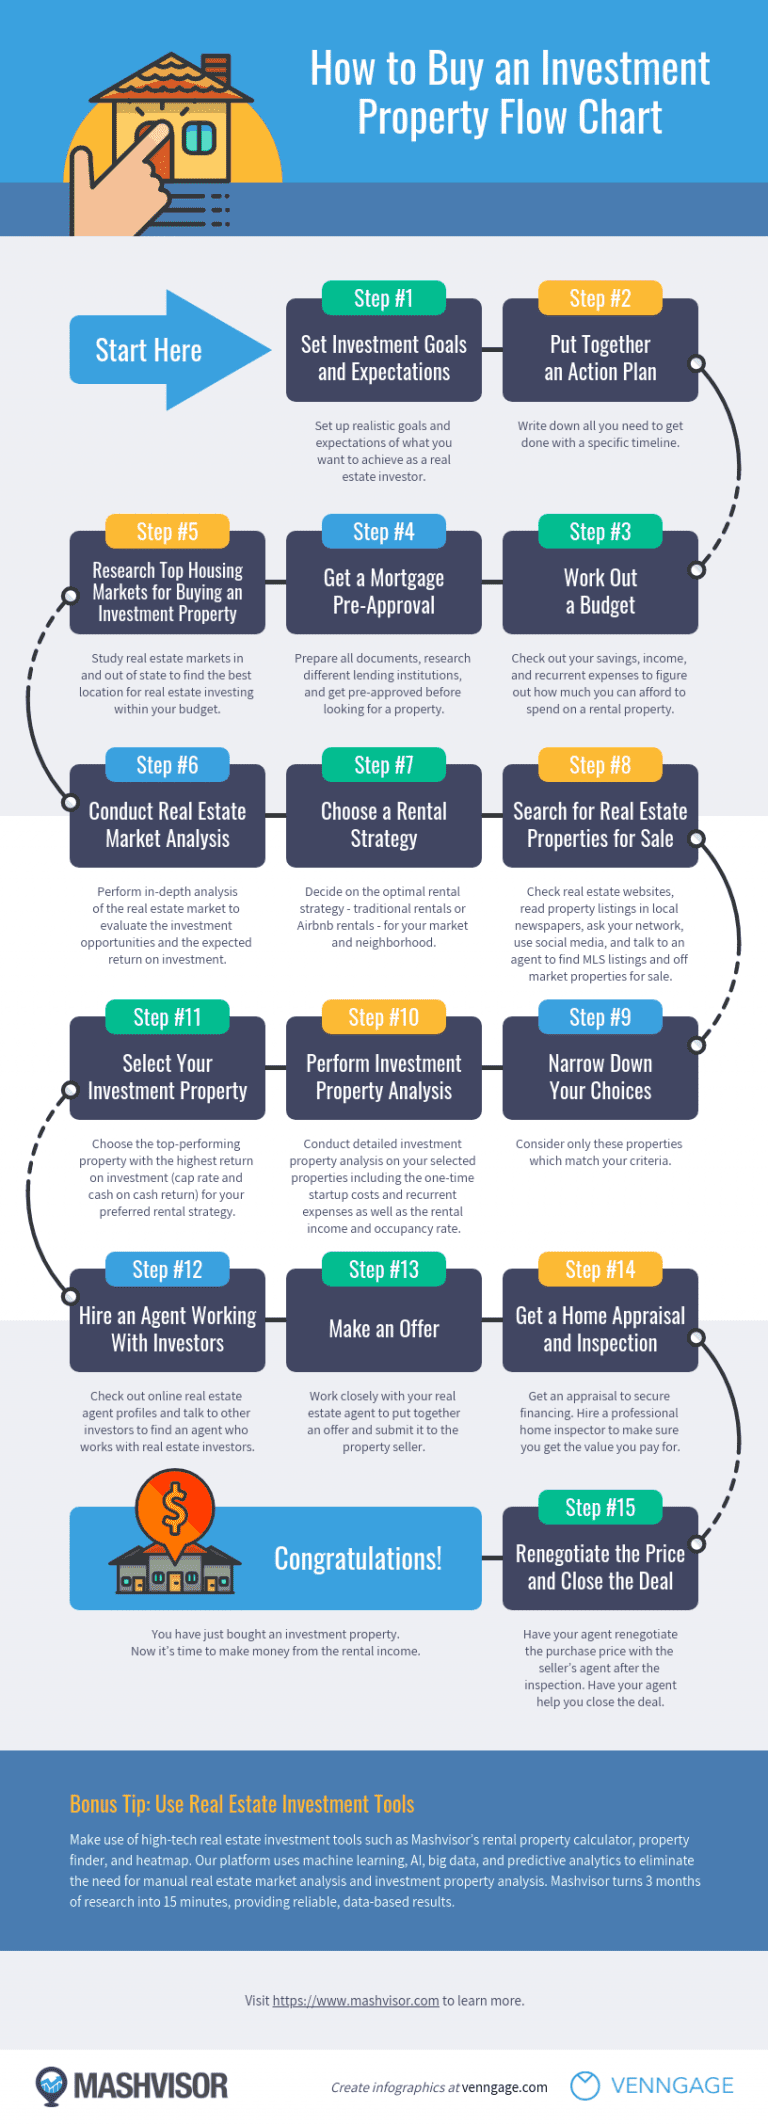 This flow chart shows you how to buy an investment property